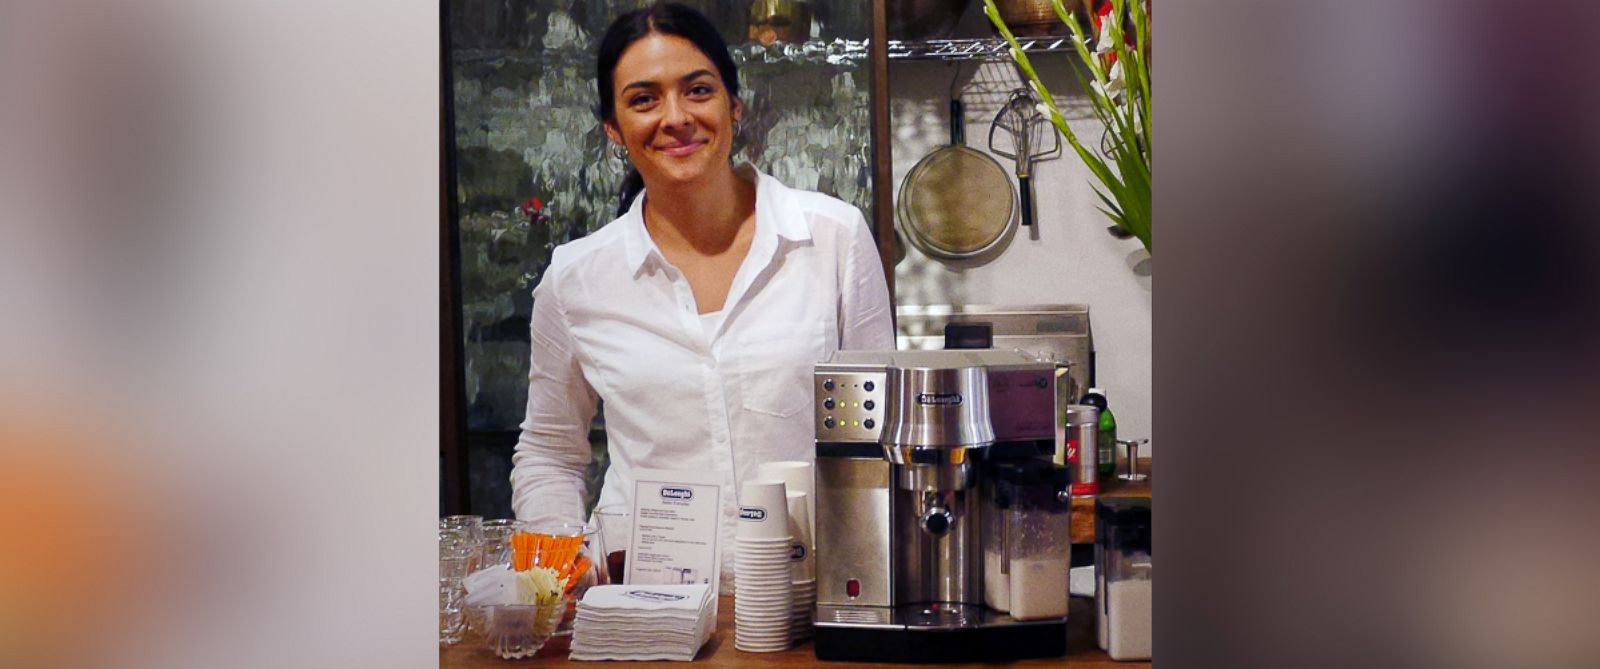 PHOTO: U.S. barista champ Laila Ghambari provides at-home tips for brewing coffee.